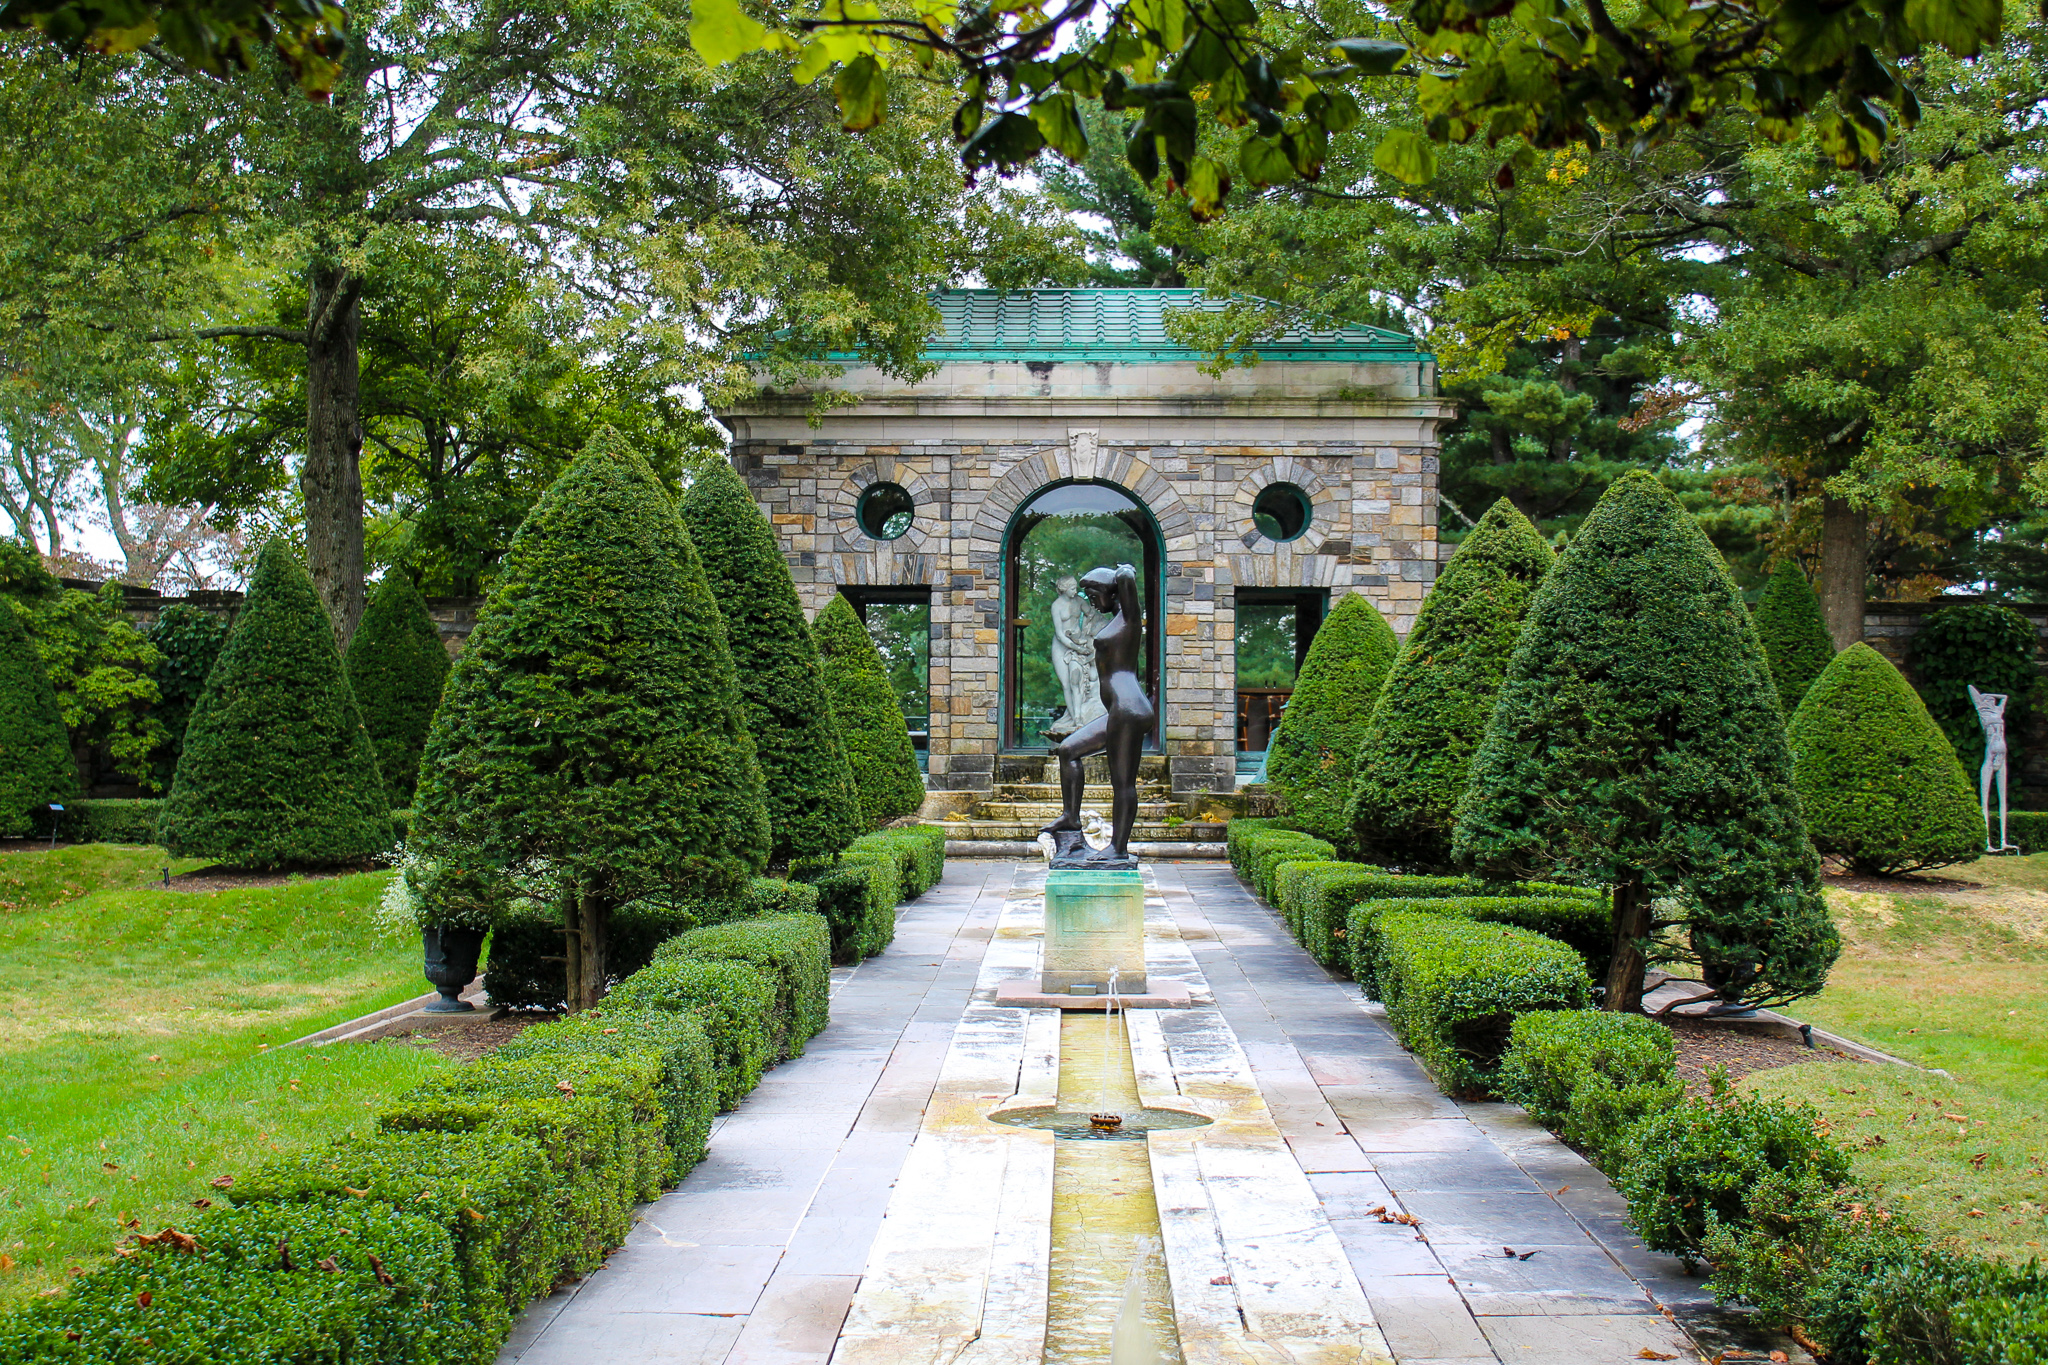 gardens are among the things to do in sleepy hollow